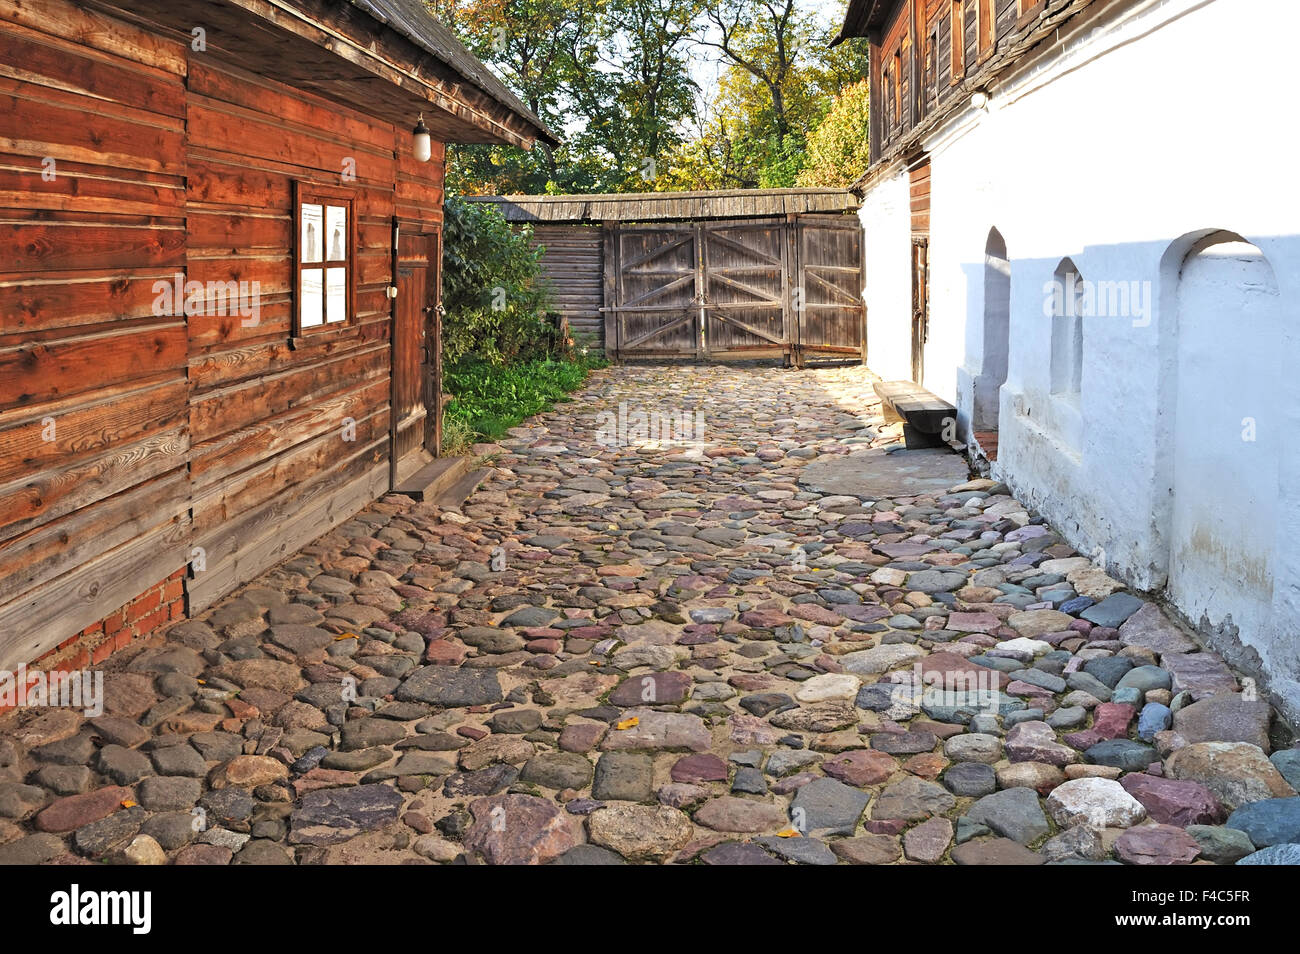 Courtyard of old russian merchant's house - Stock Image